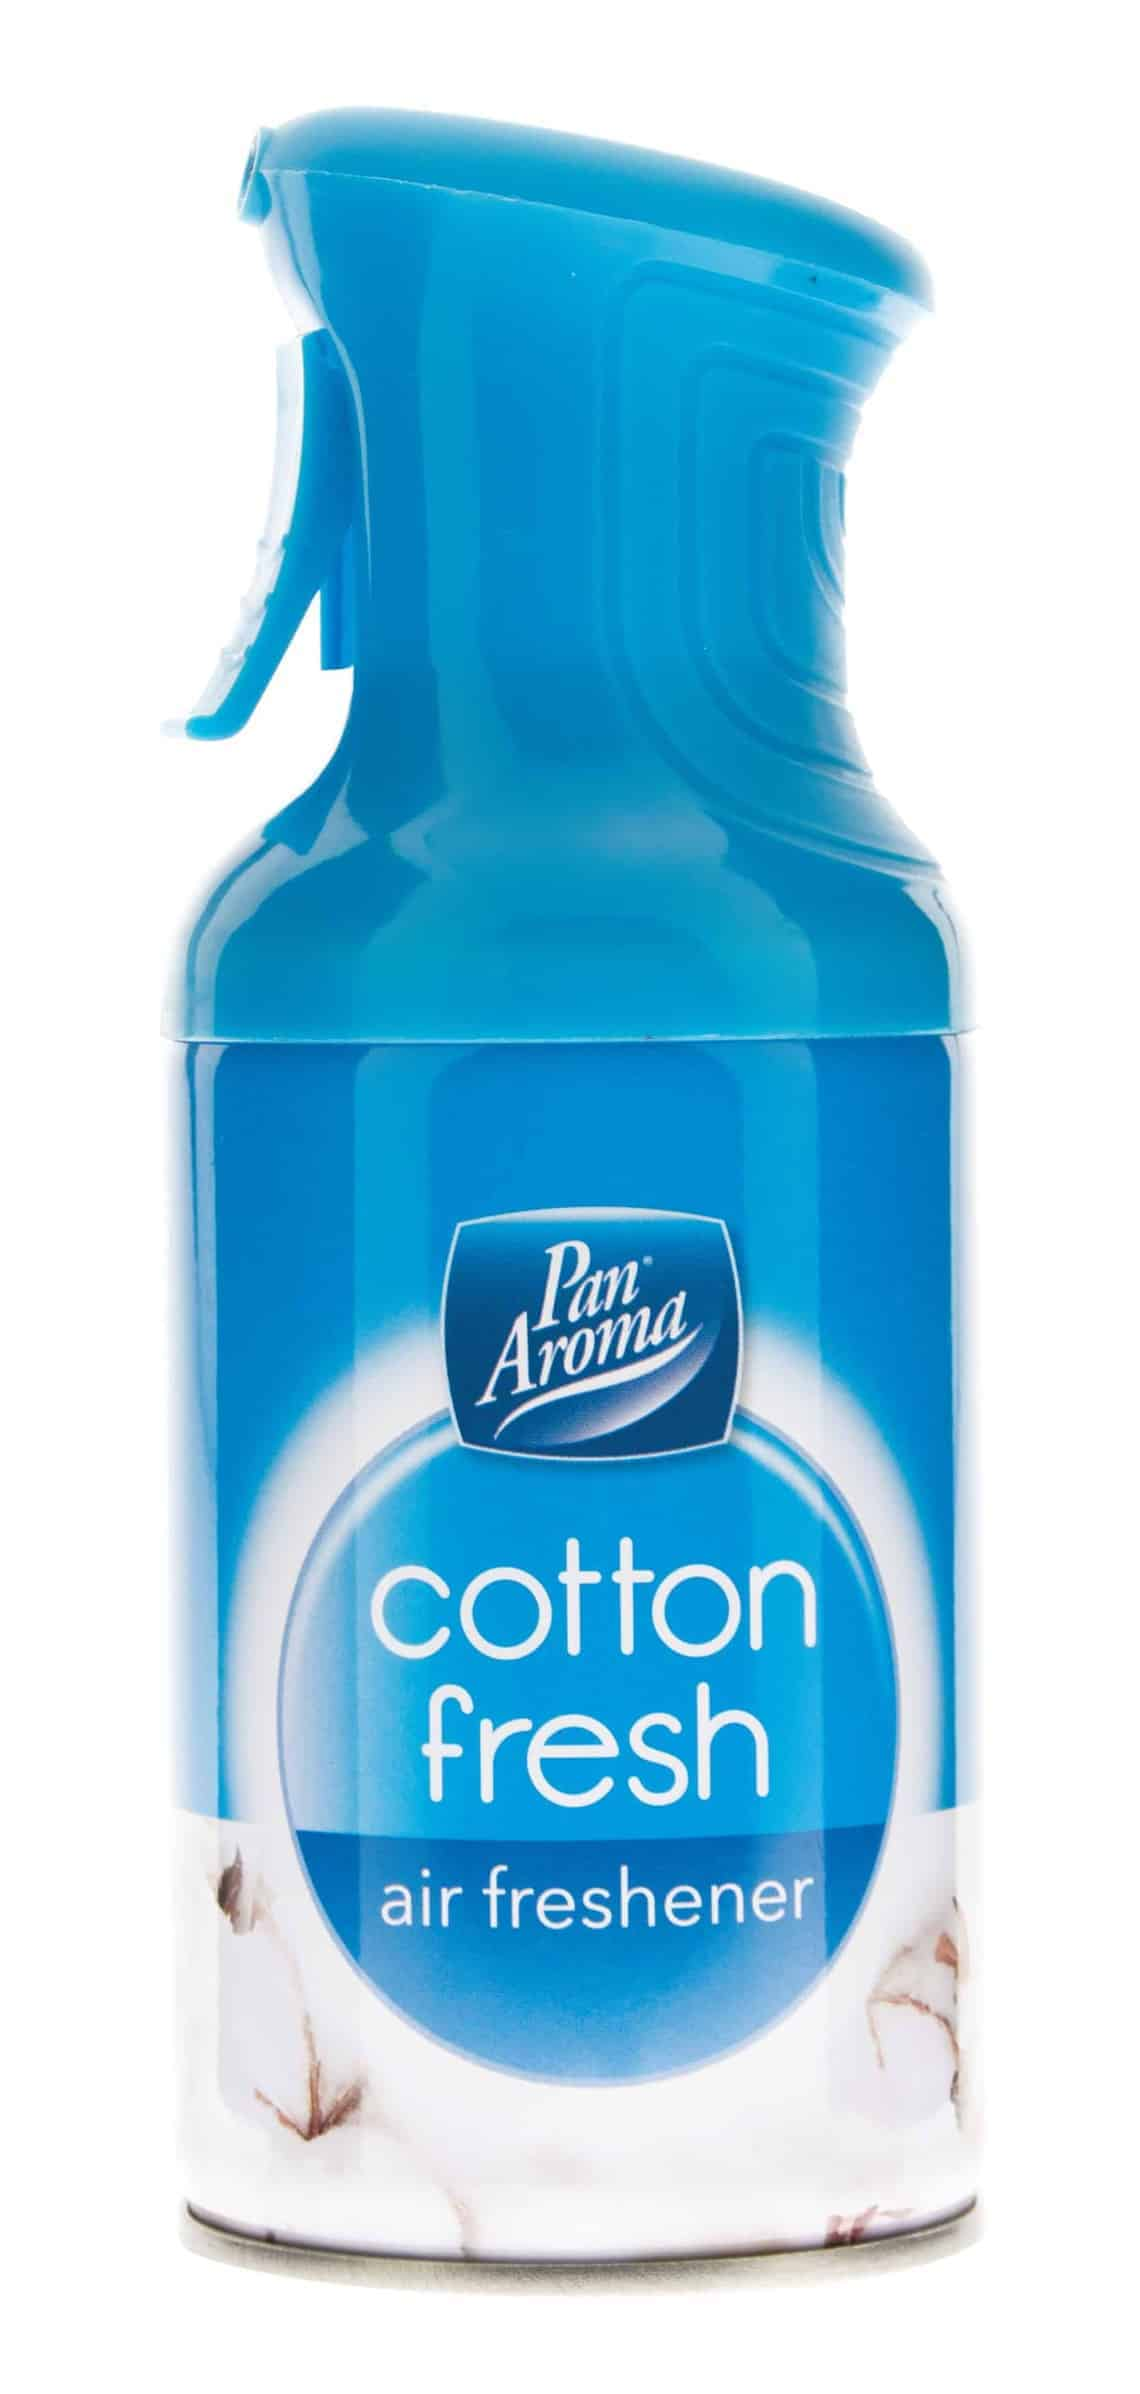 Pan Aroma Cotton Fresh Air Freshner -Trigger Spray-250Ml